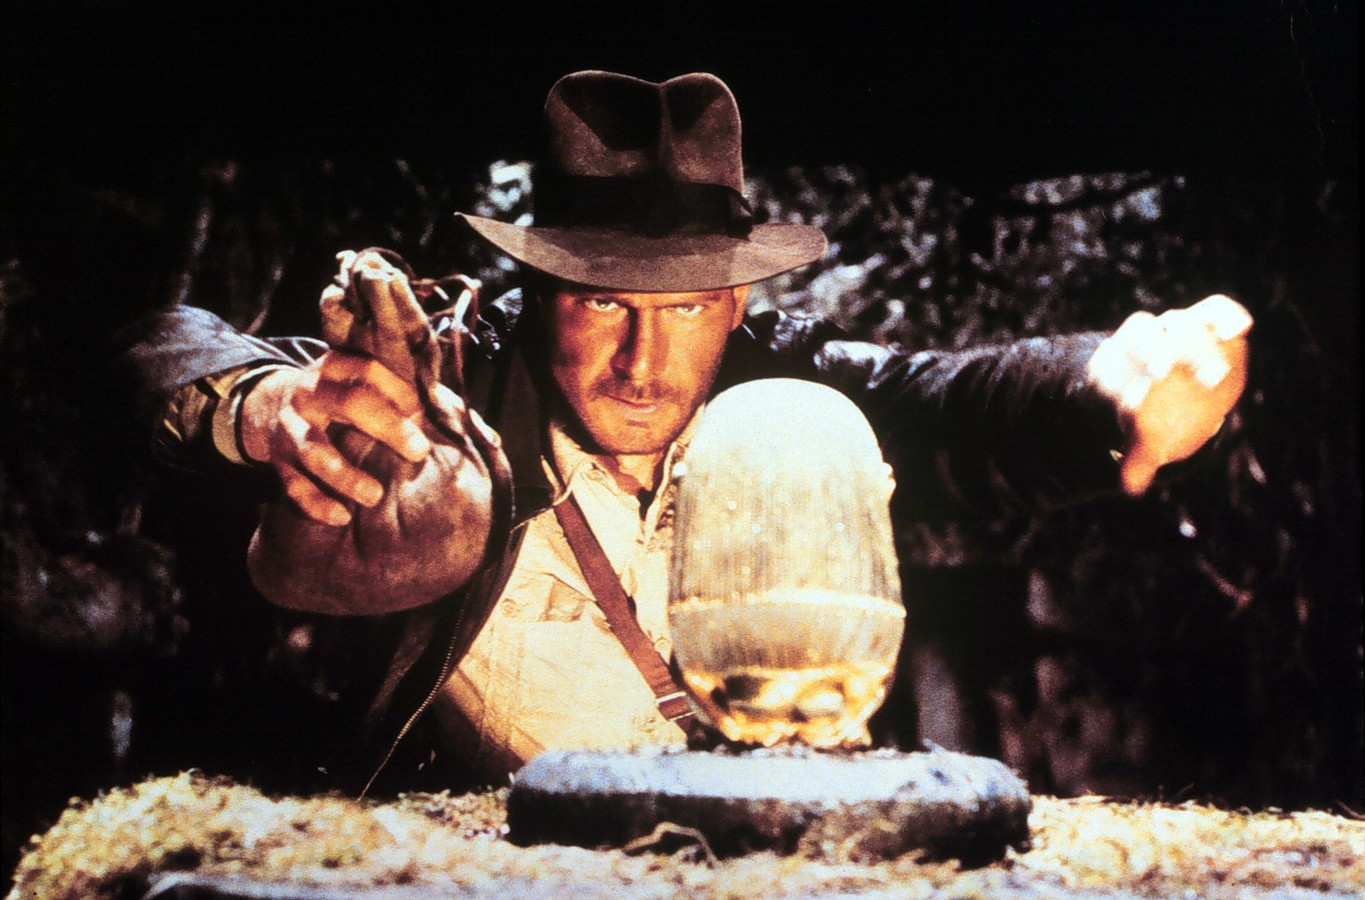 Harrison Ford in Indiana Jones